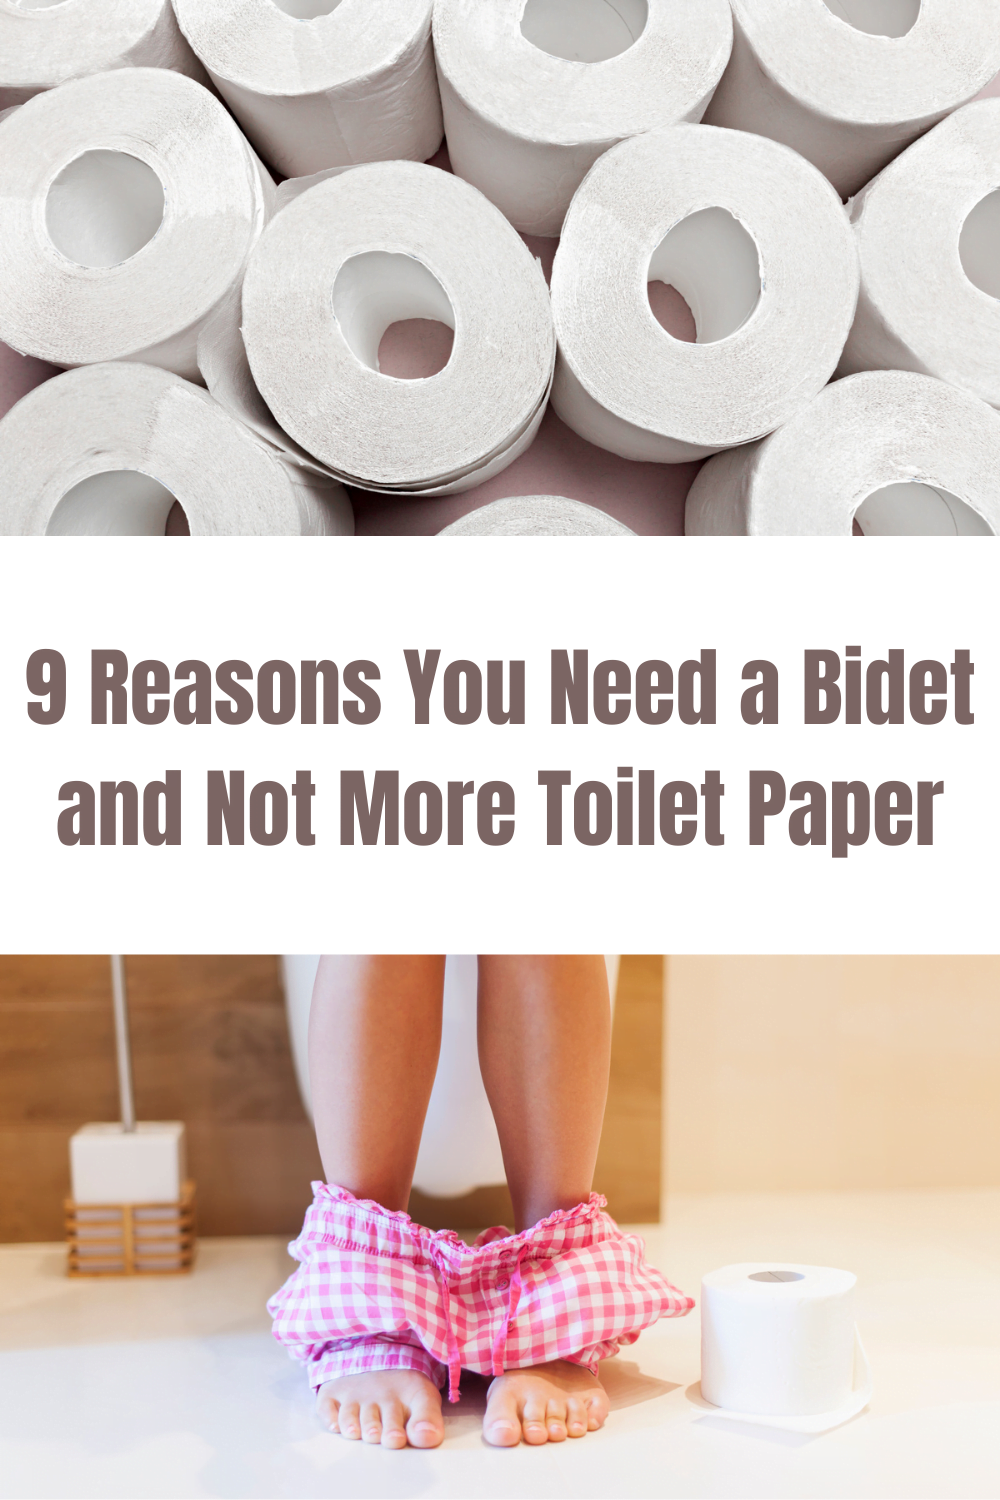 9 Reasons Why You Need a Bidet and Not More Toilet Paper